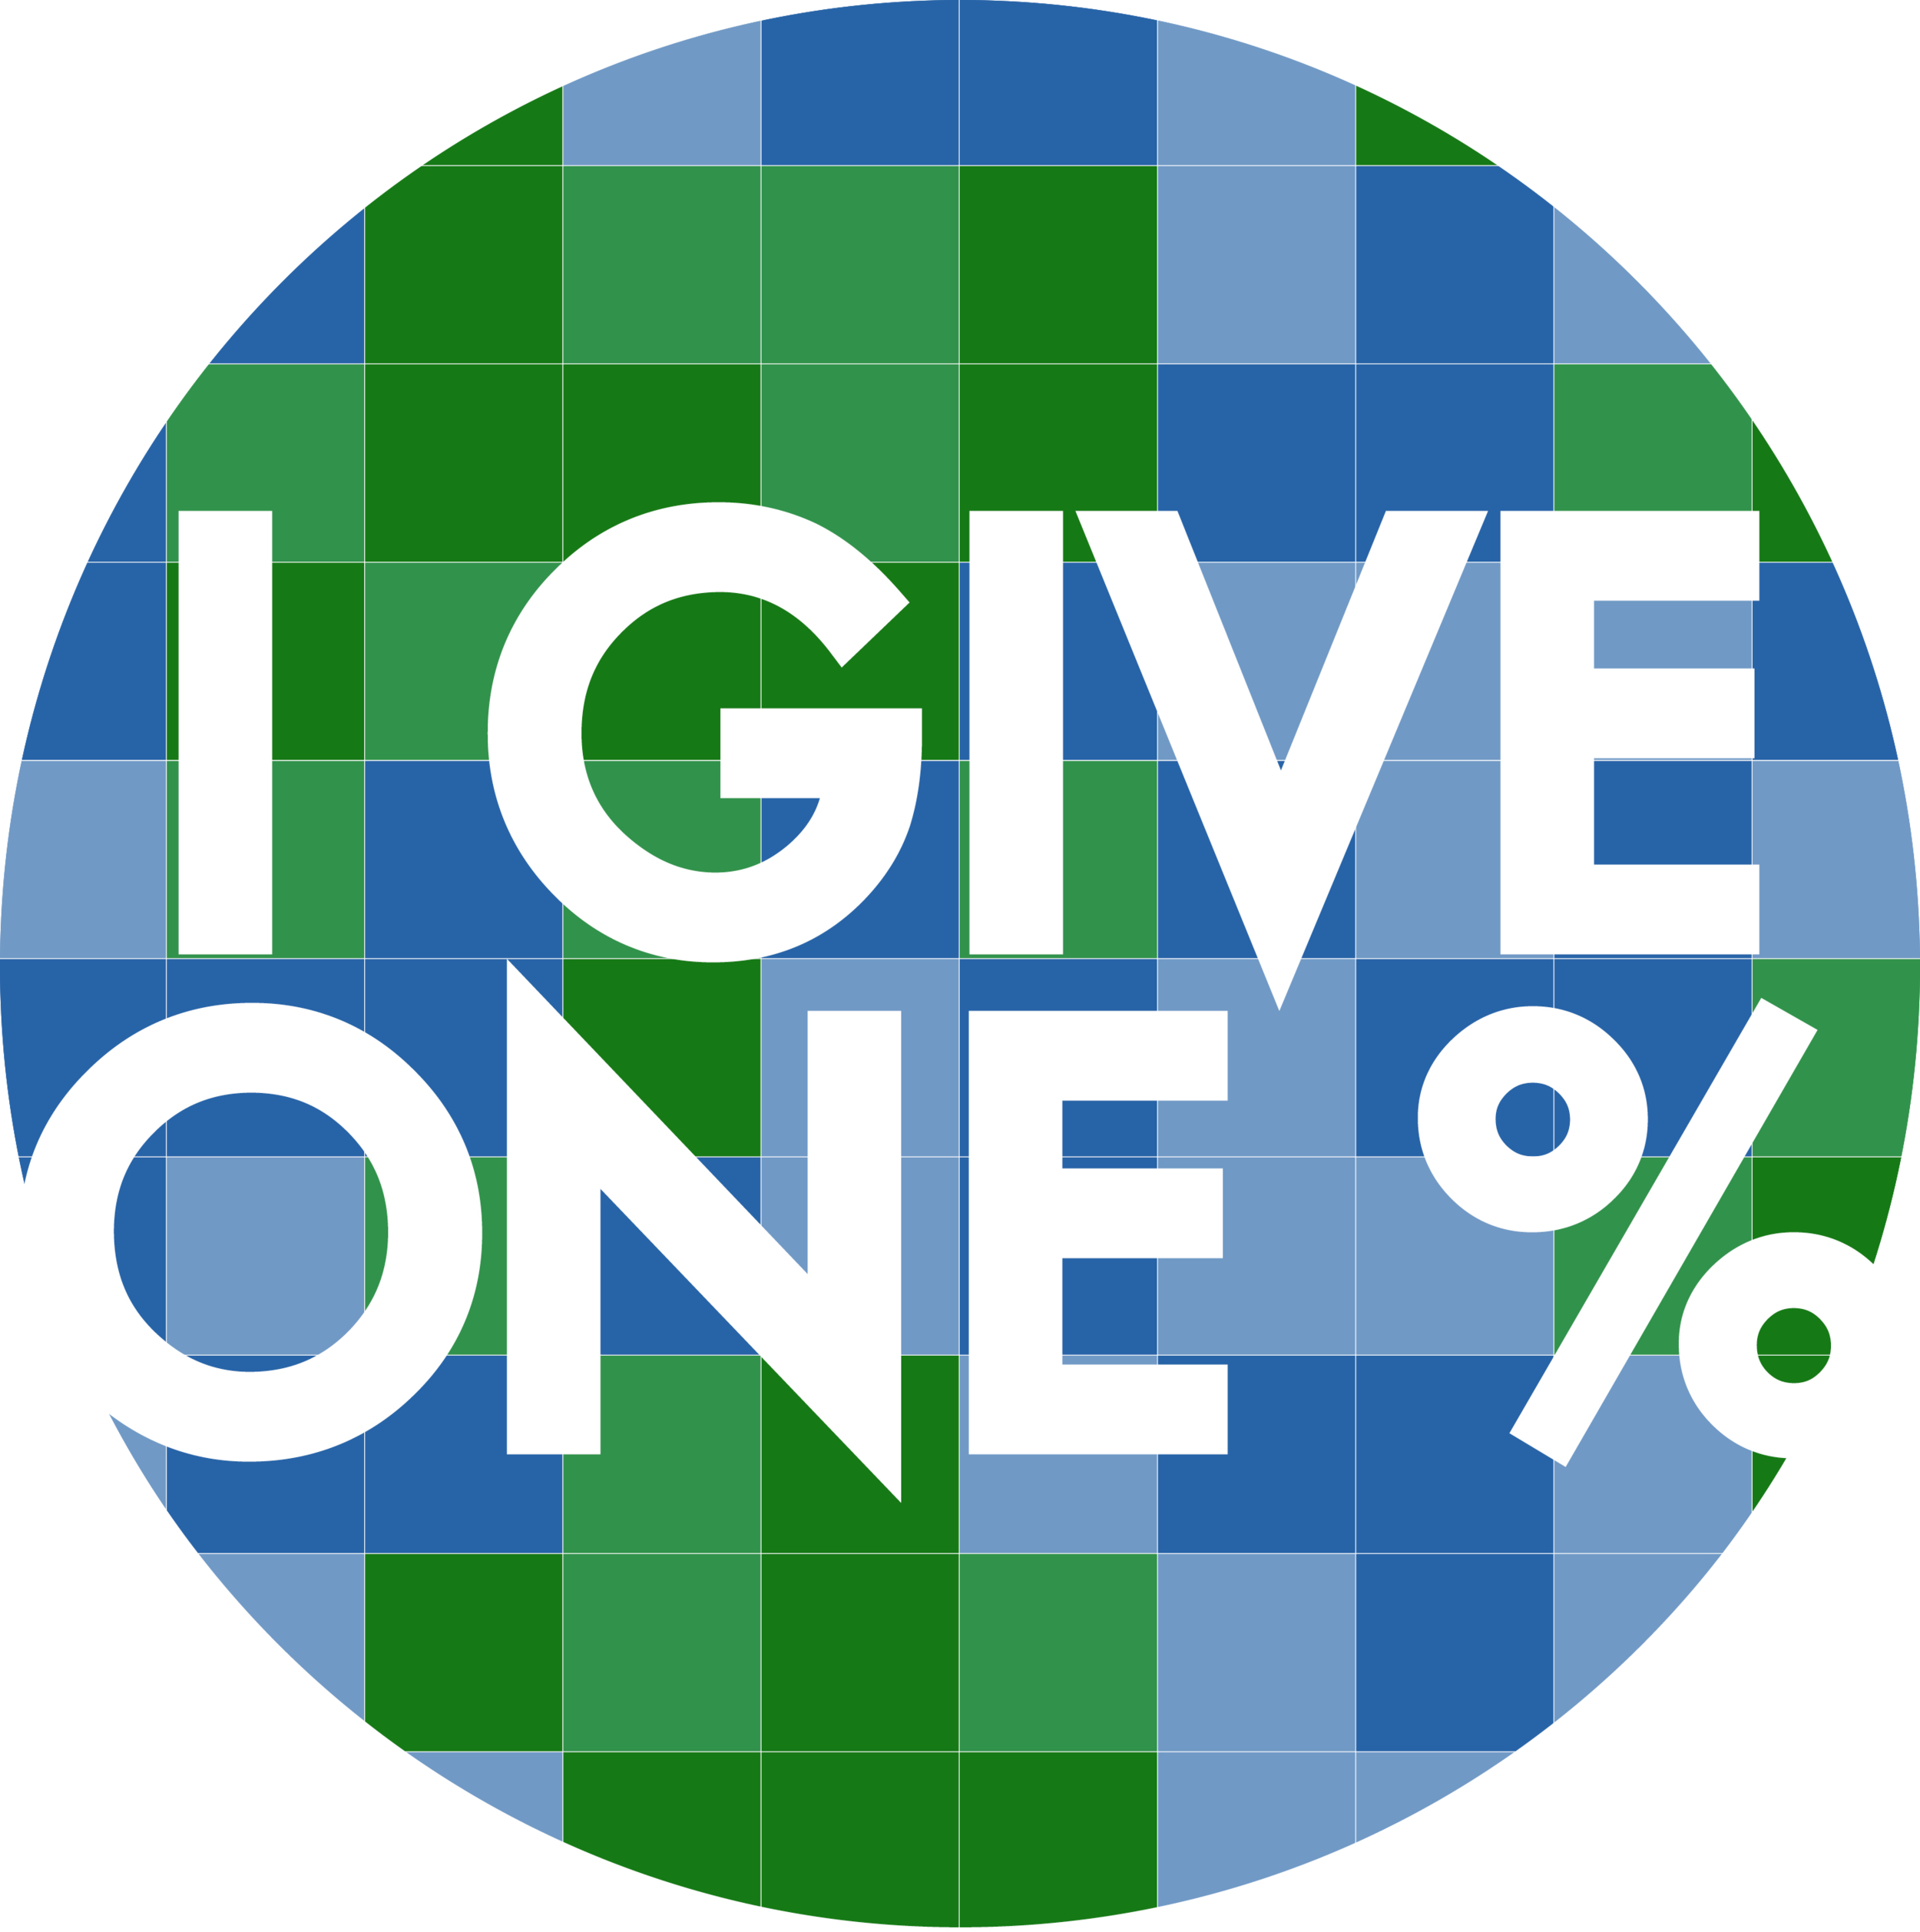 Copy of 1 Percent Transparent Logo.png